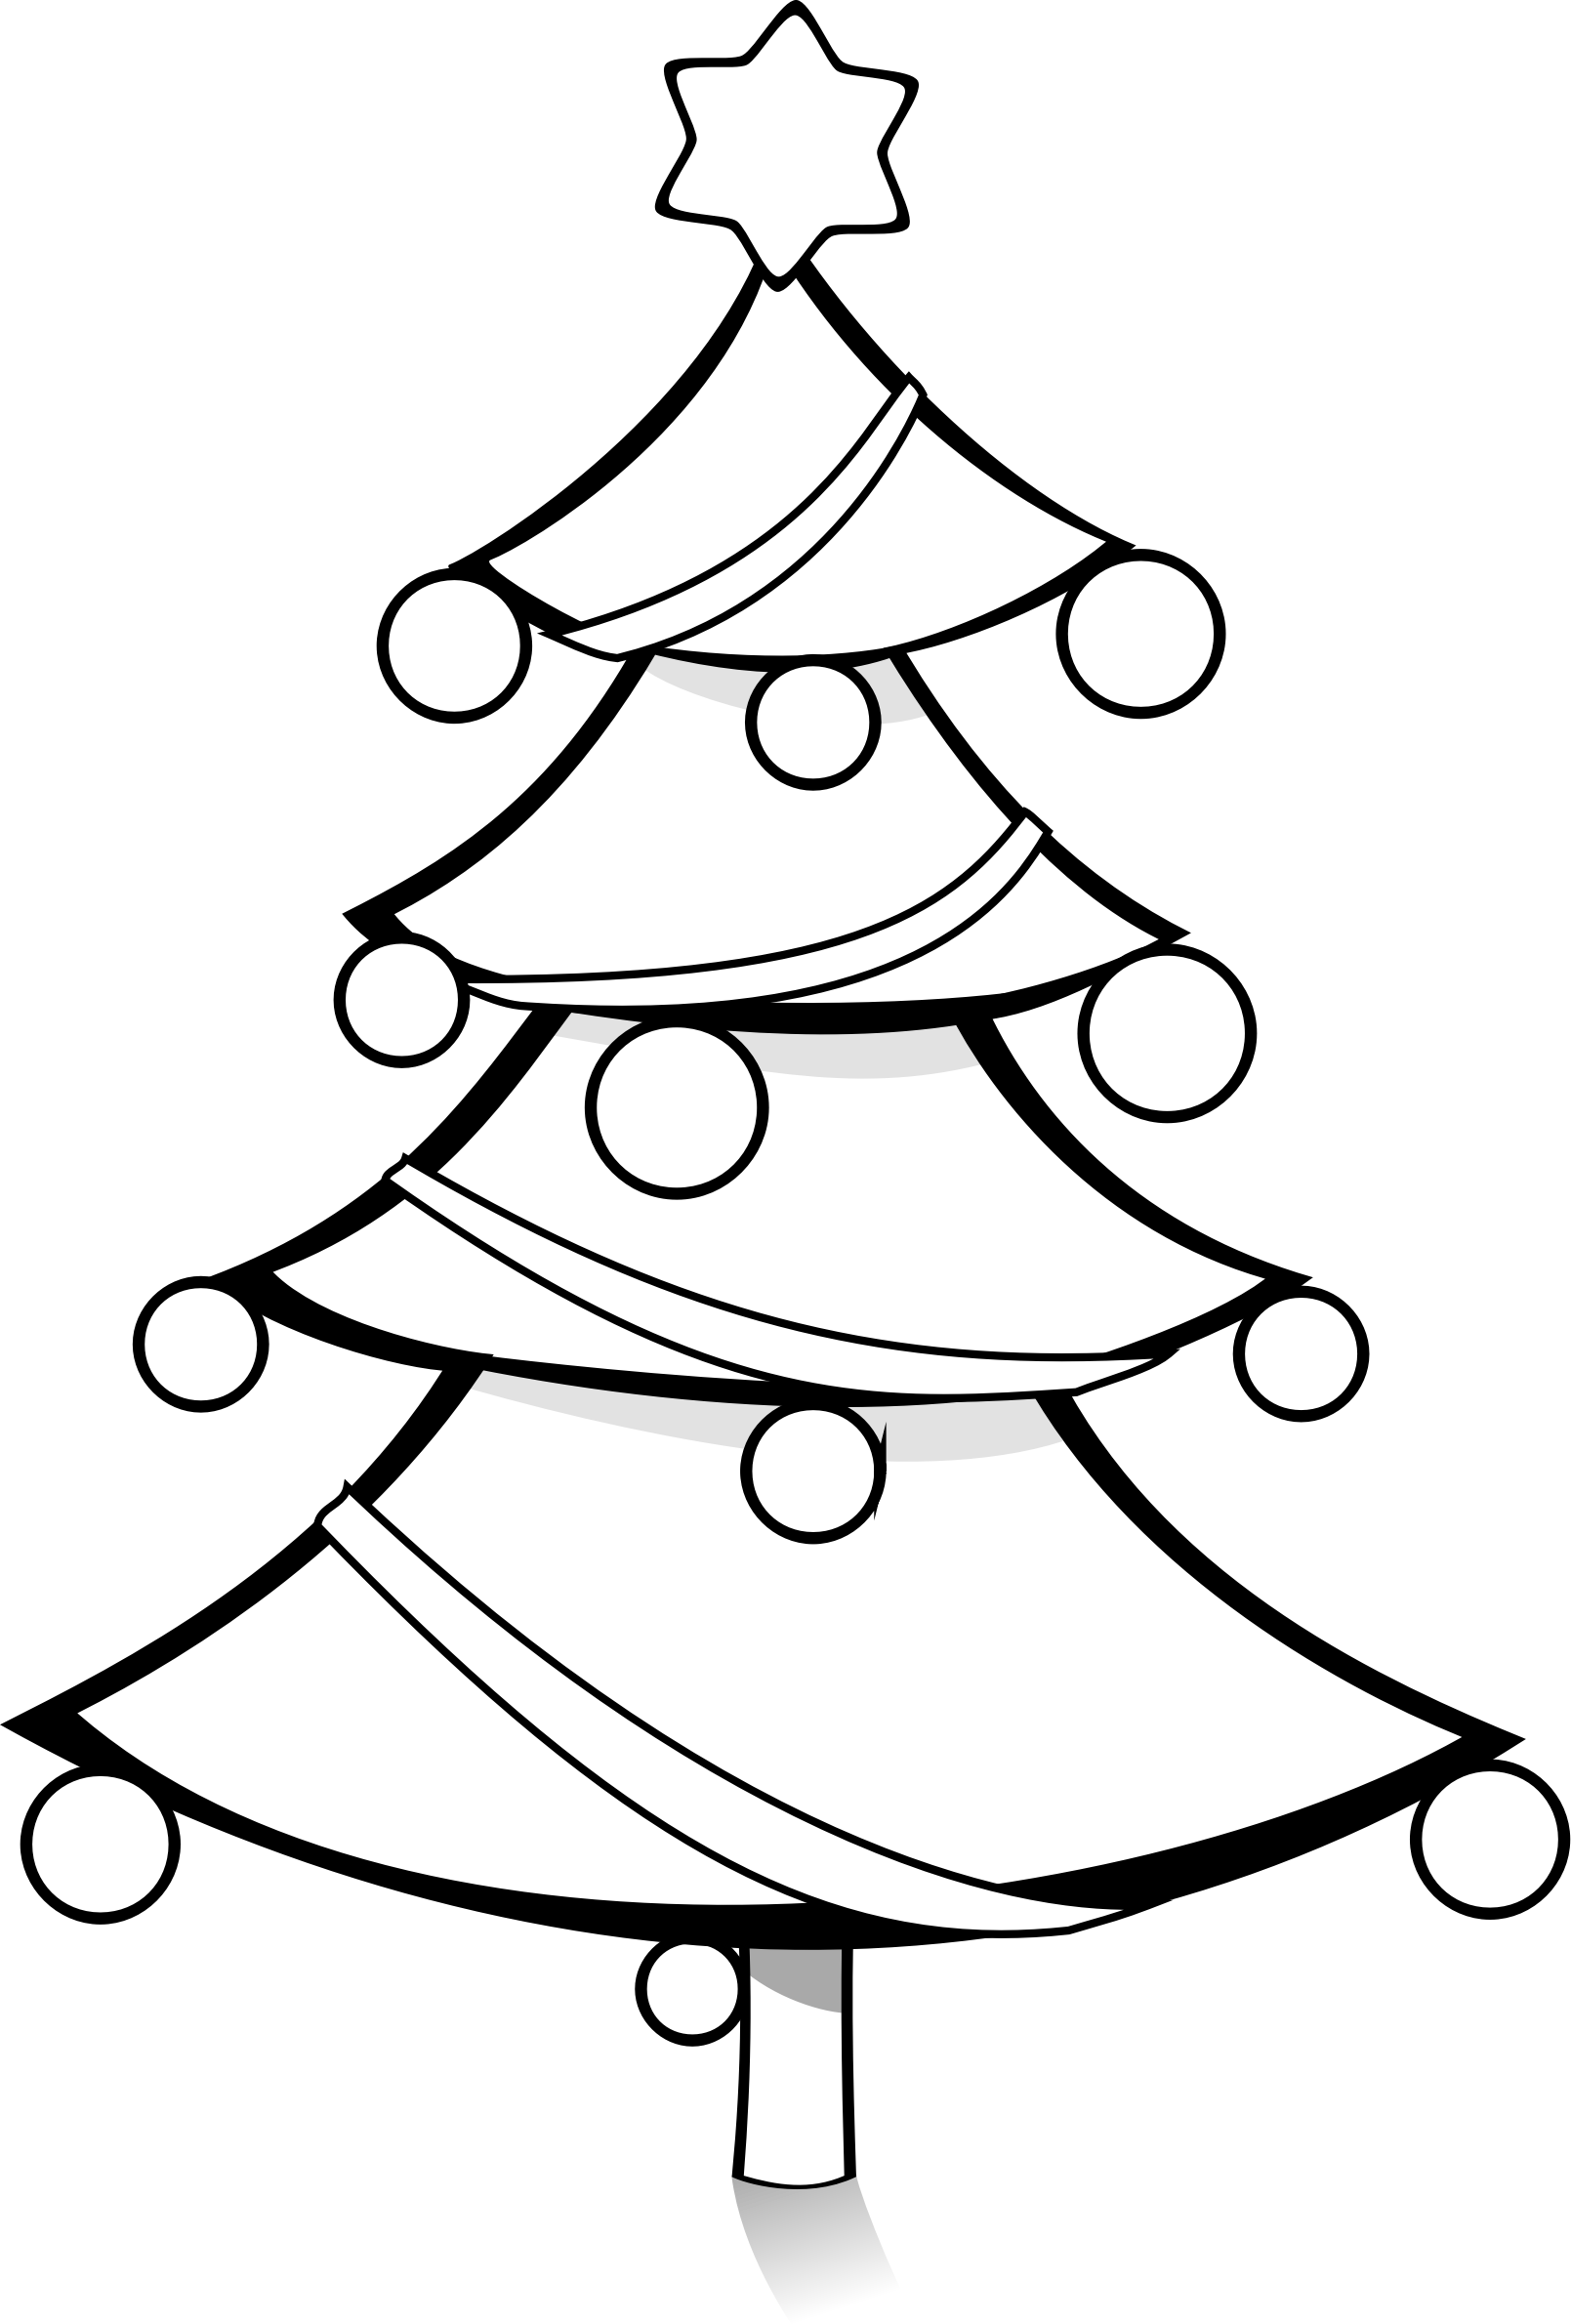 Christmas Ornaments Clipart Coloring - ClipArt Best